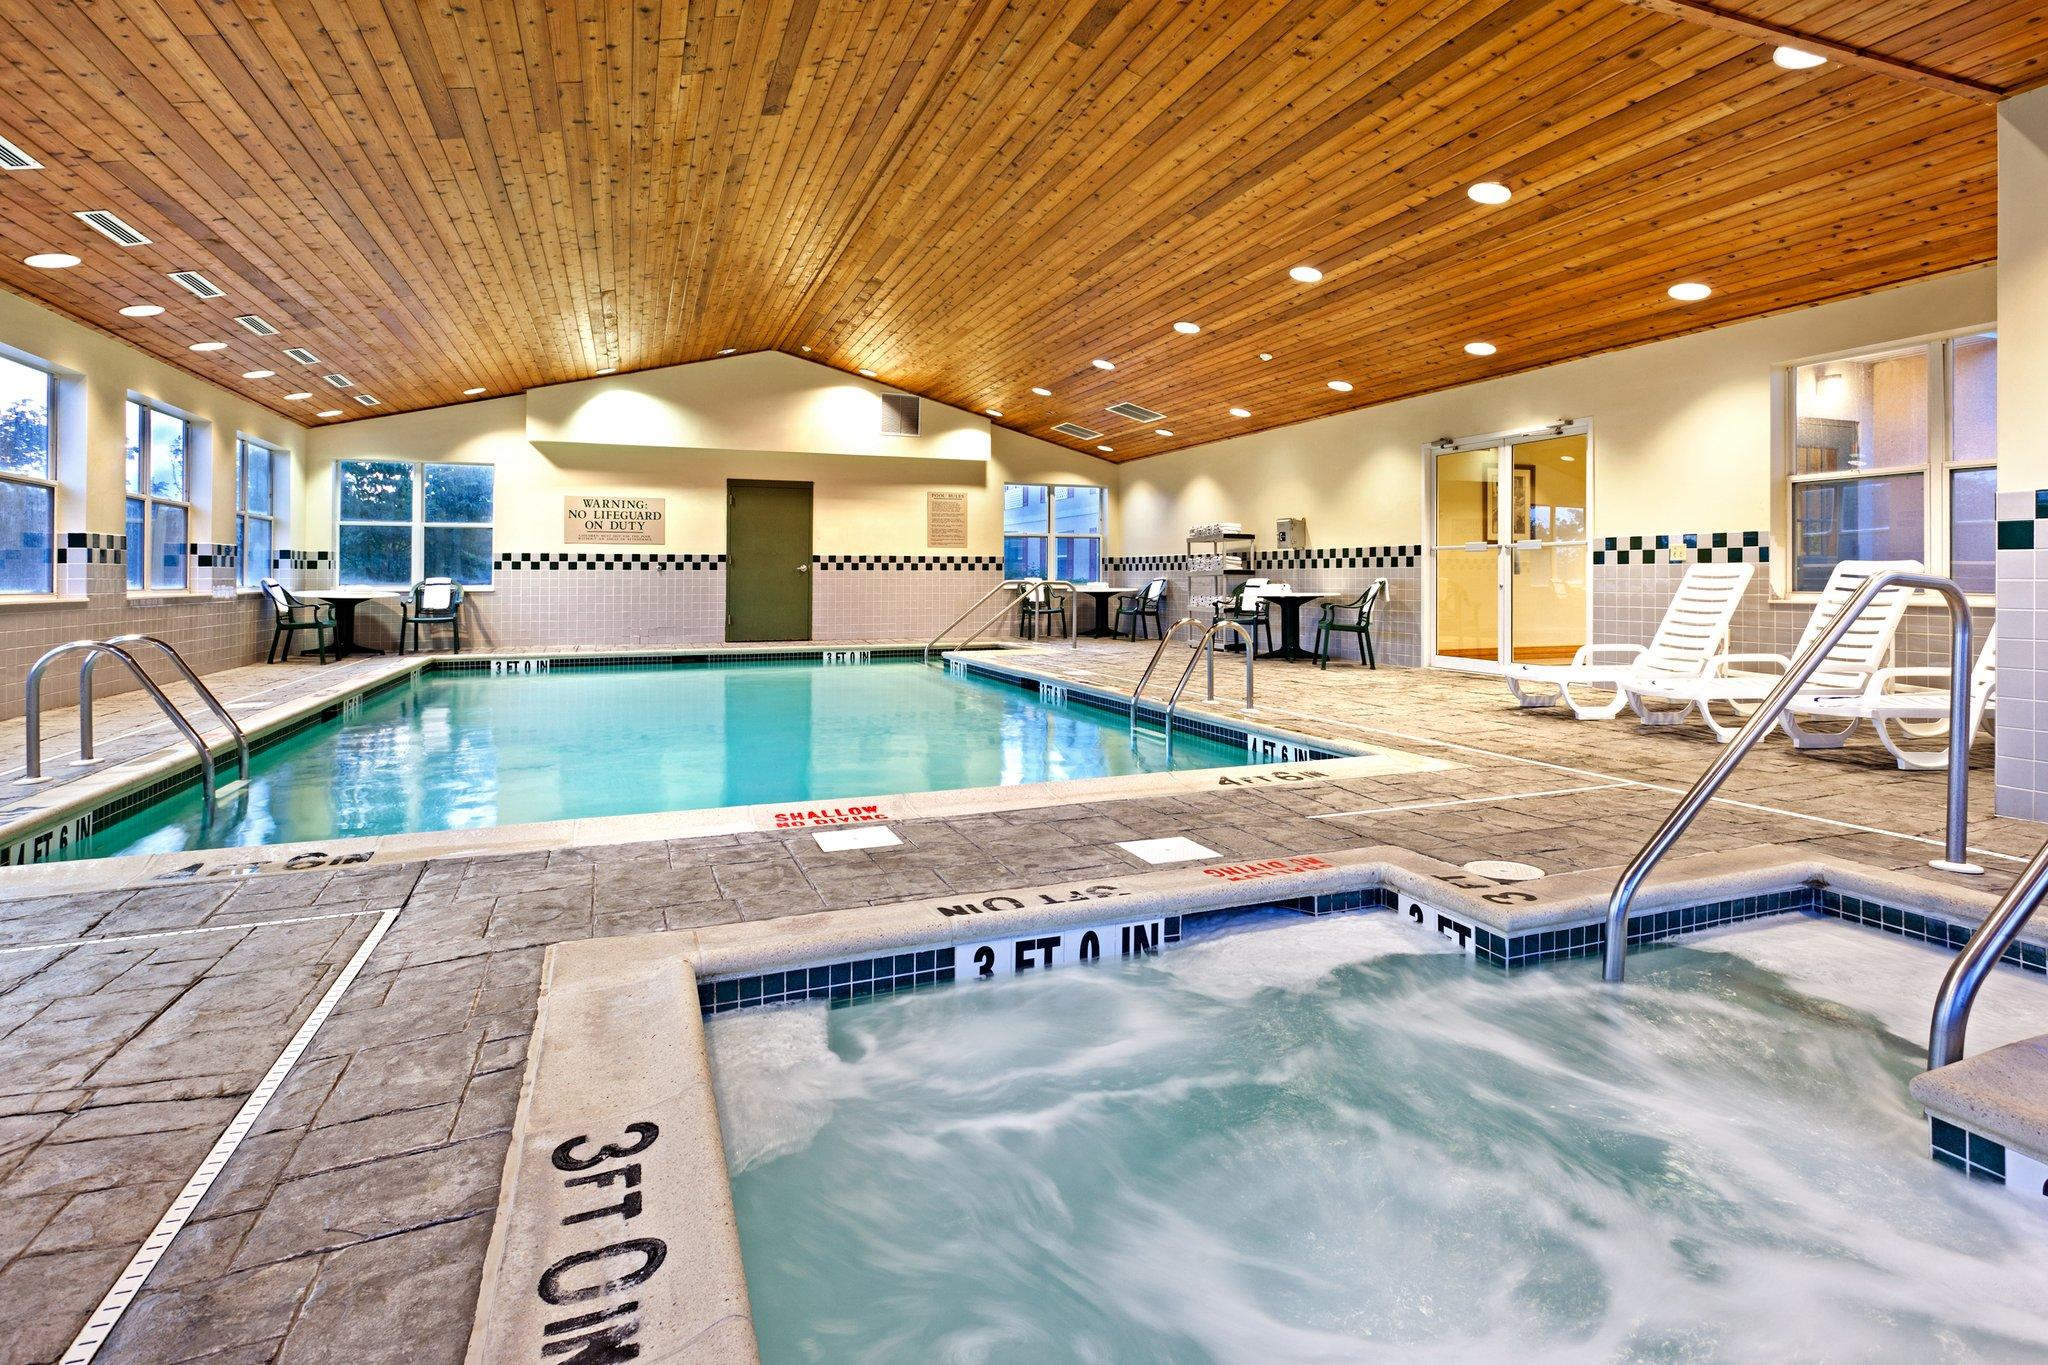 Country Inn & Suites By Carlson, Harrisburg Northeast (H